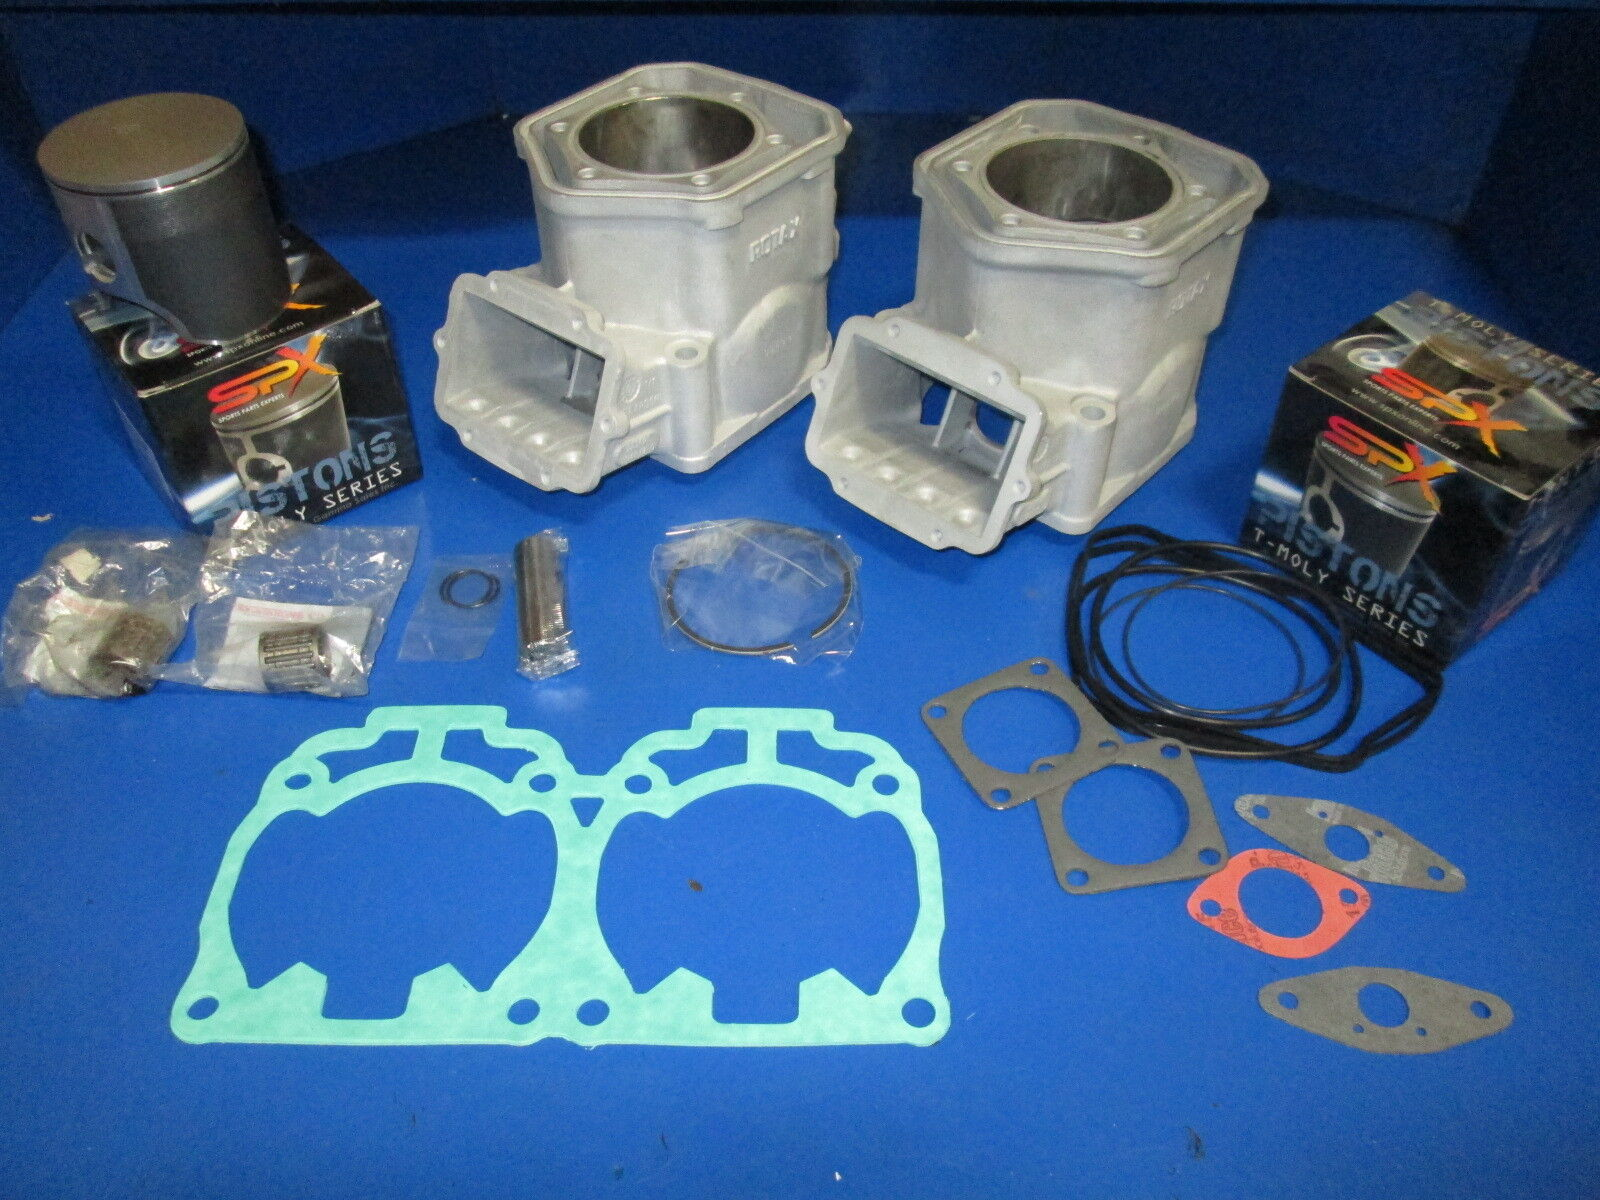 SKIDOO SUMMIT 700  MXZ TOURING CYLINDERS   PISTONS  GASKETS TOP END REBUILD KIT  hastened to see